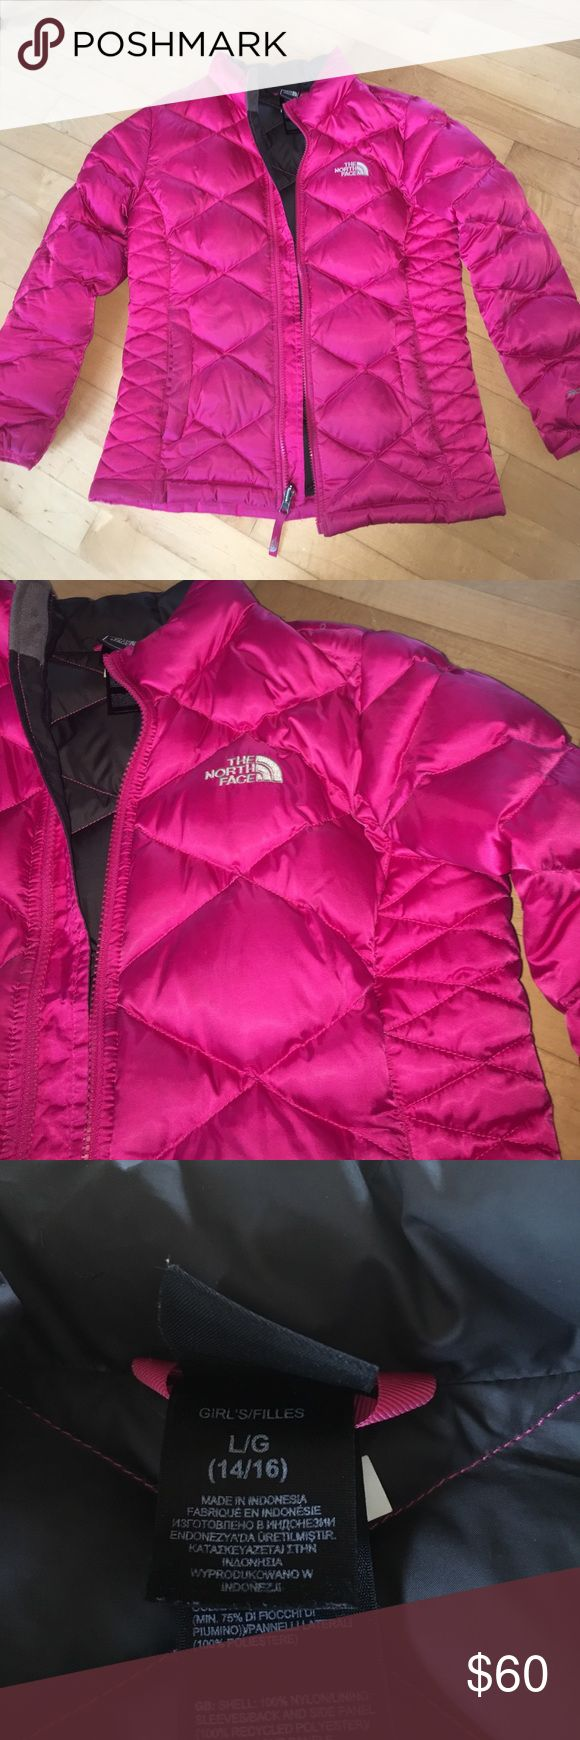 The north face winter jacket The north face Pink winter jacket. Only lightly worn! The North Face Jackets & Coats